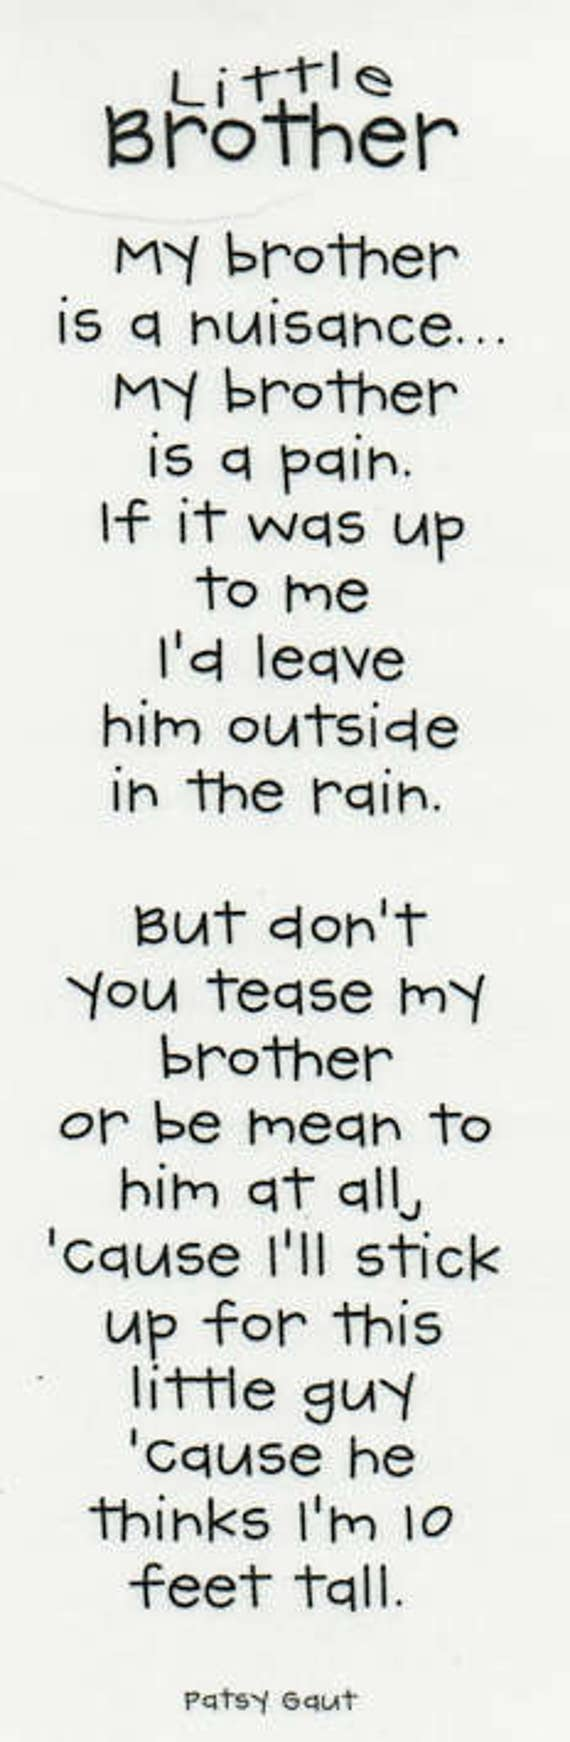 Little Brother Vellum Quotes Forever In Time Scrapbook Embellishments  Cardmaking Crafts